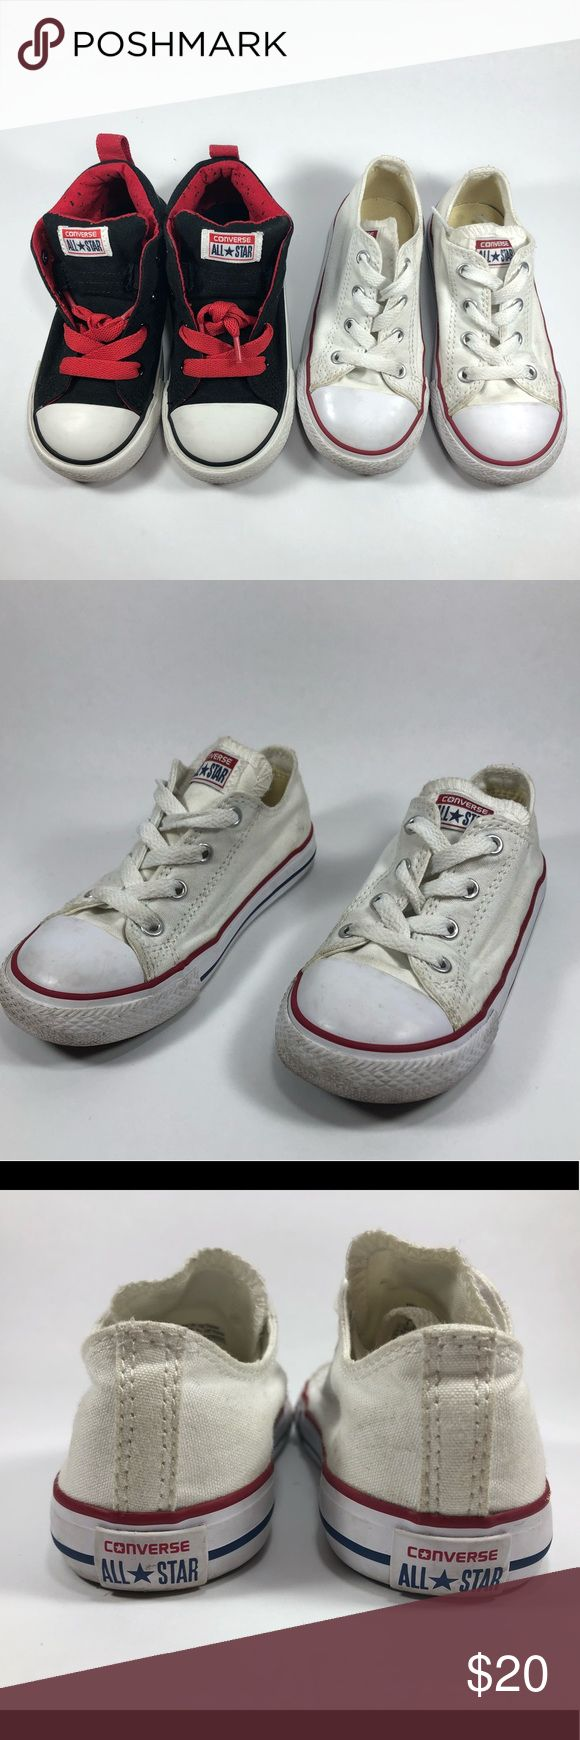 Converse Shoes Two Pairs Kids Size 9 Fair Condition Normal Wear Including Scuffing See Pictures For Details. Converse Shoes Two Pairs Size Kids Sz 9. Cream & Red Shoe. Black And Red Shoe Converse Shoes Baby & Walker